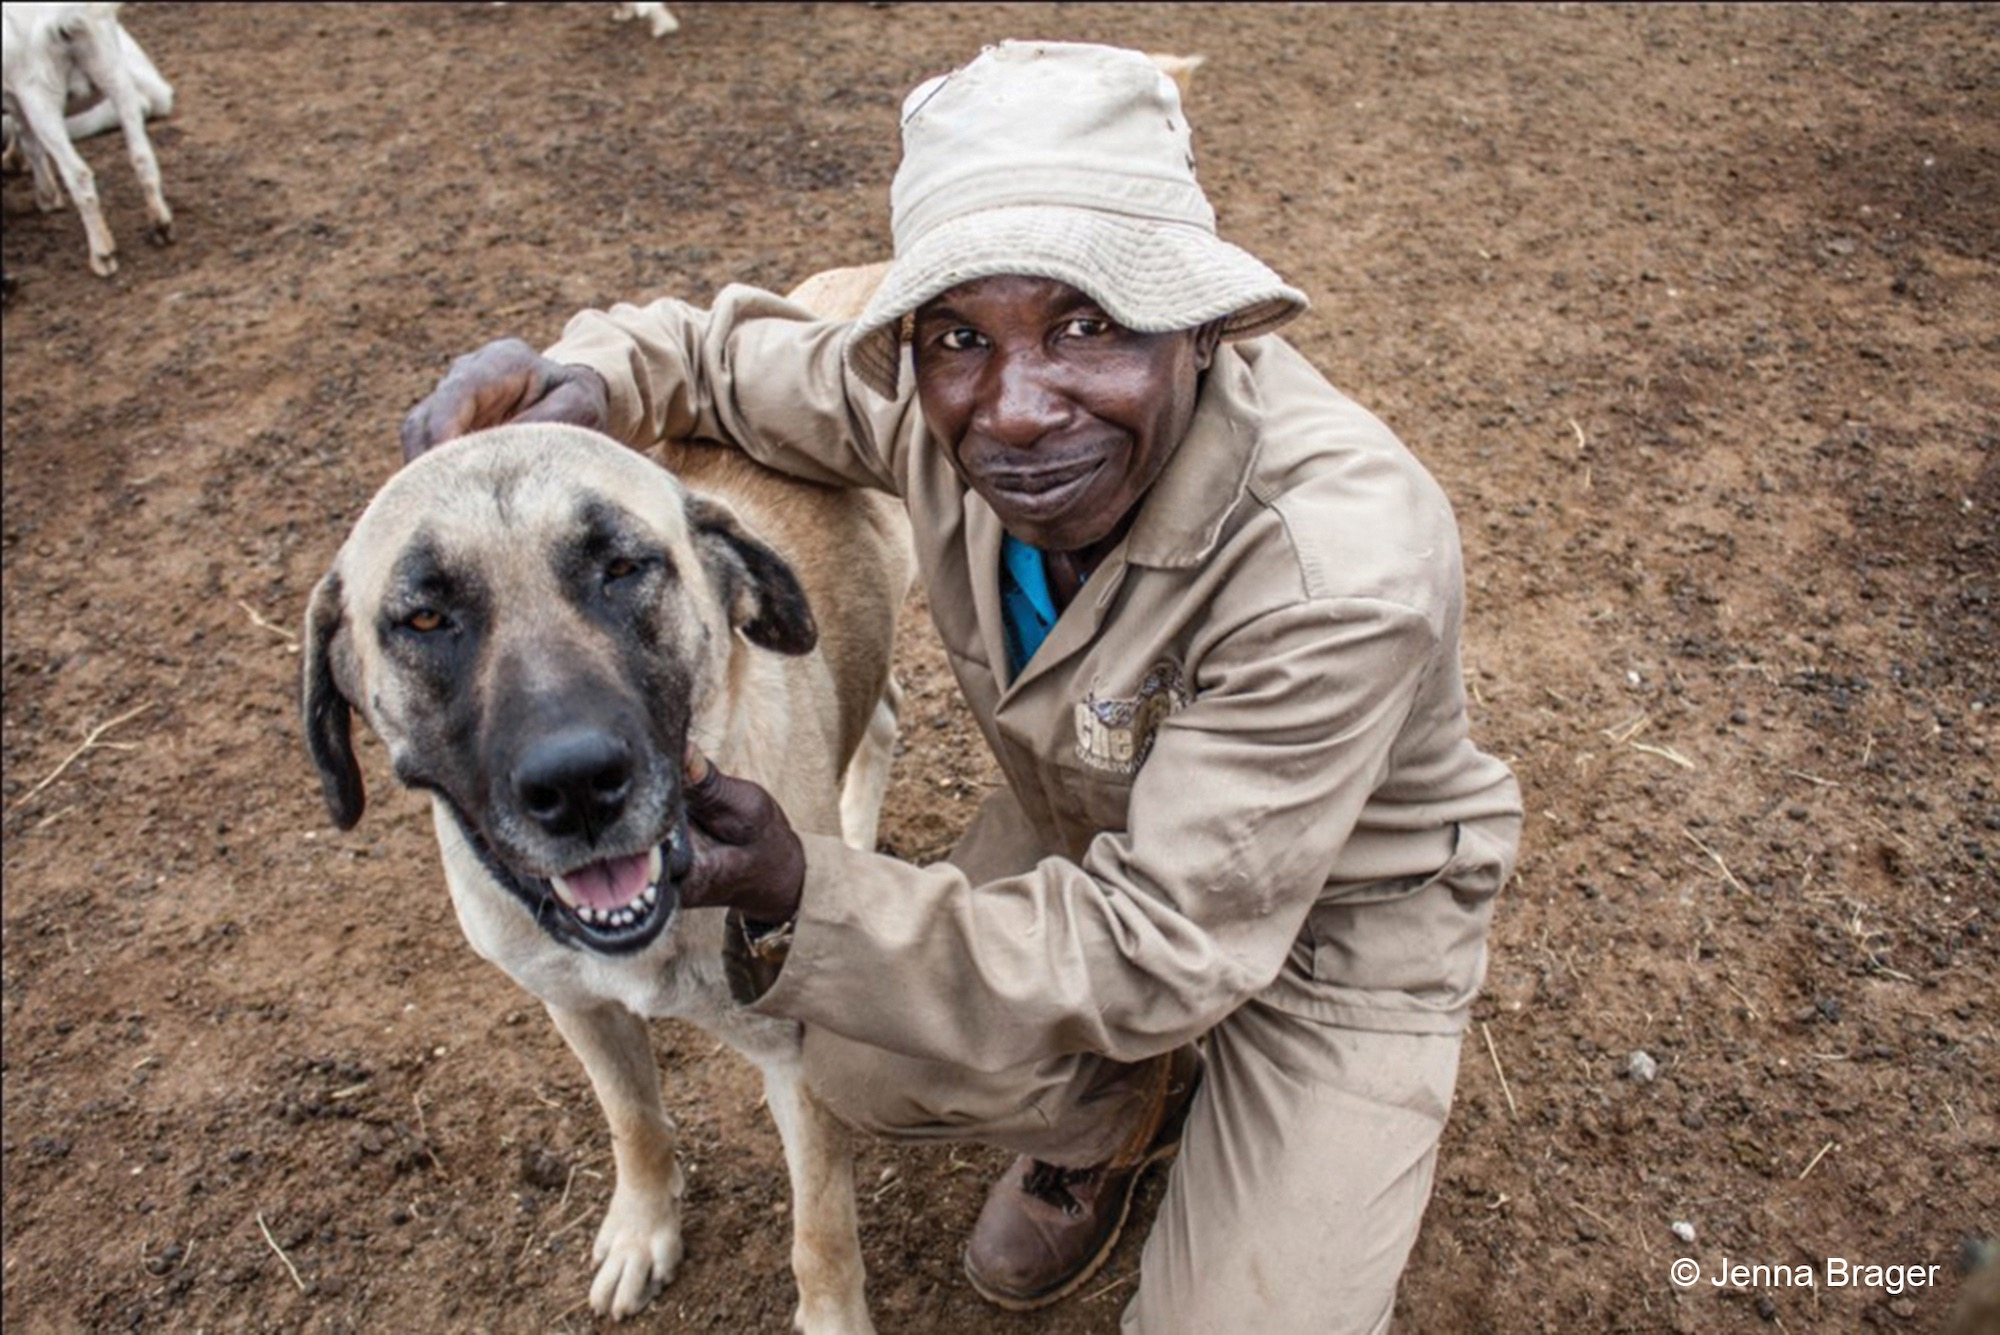 Armas the herder smiles while hugging a guarding dog